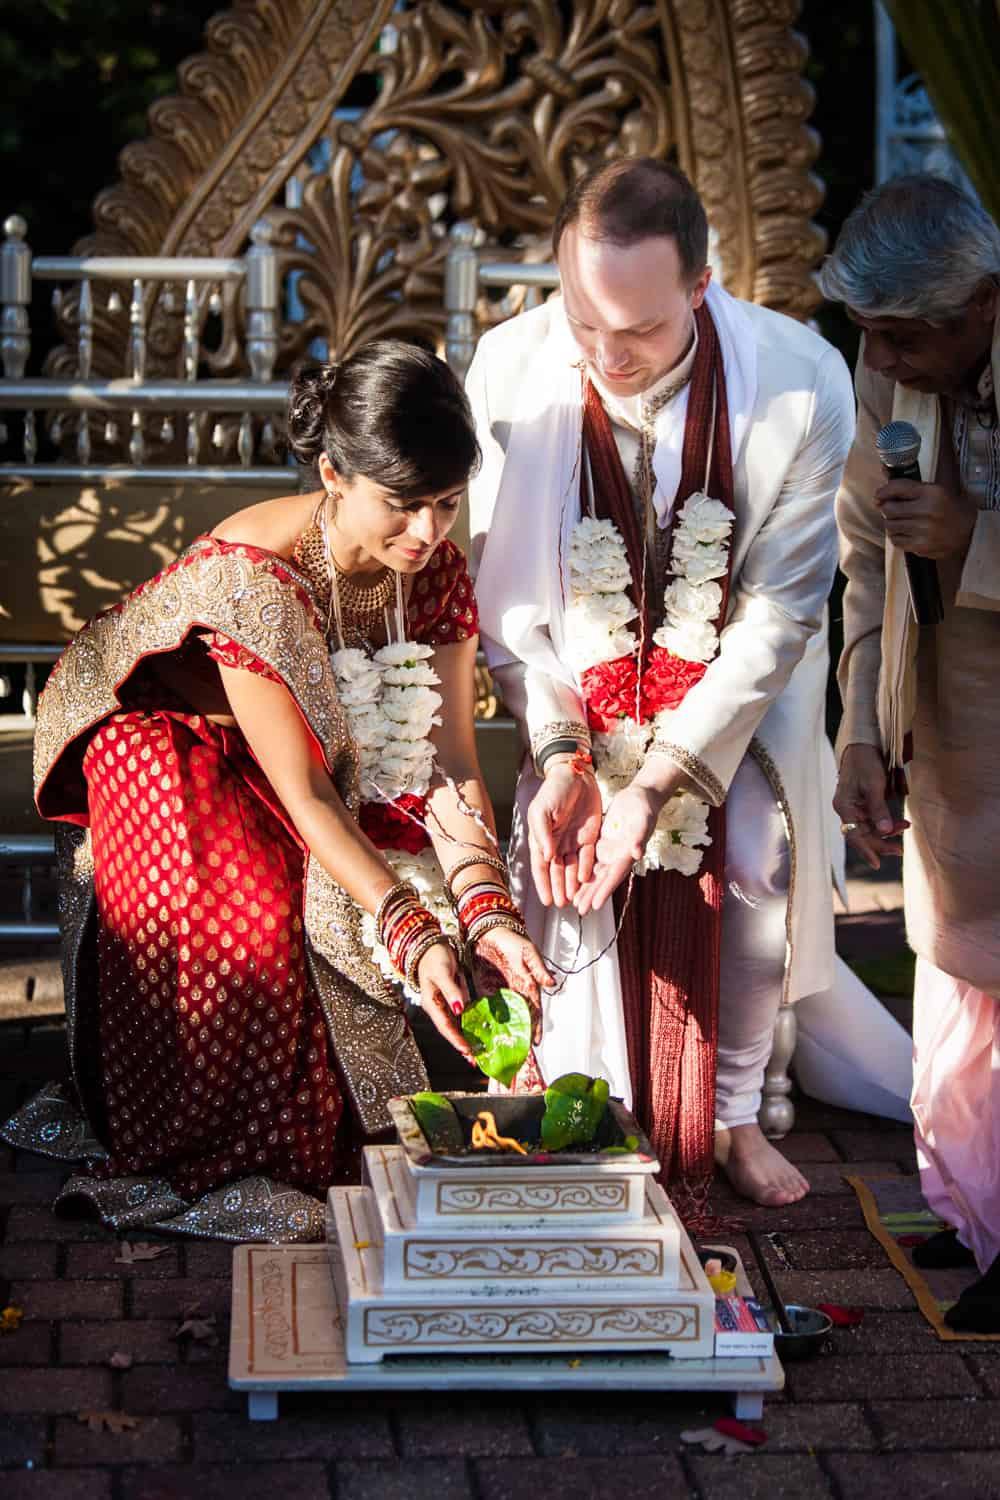 Bride and groom putting leaves in fire during traditional Hindu wedding ceremony